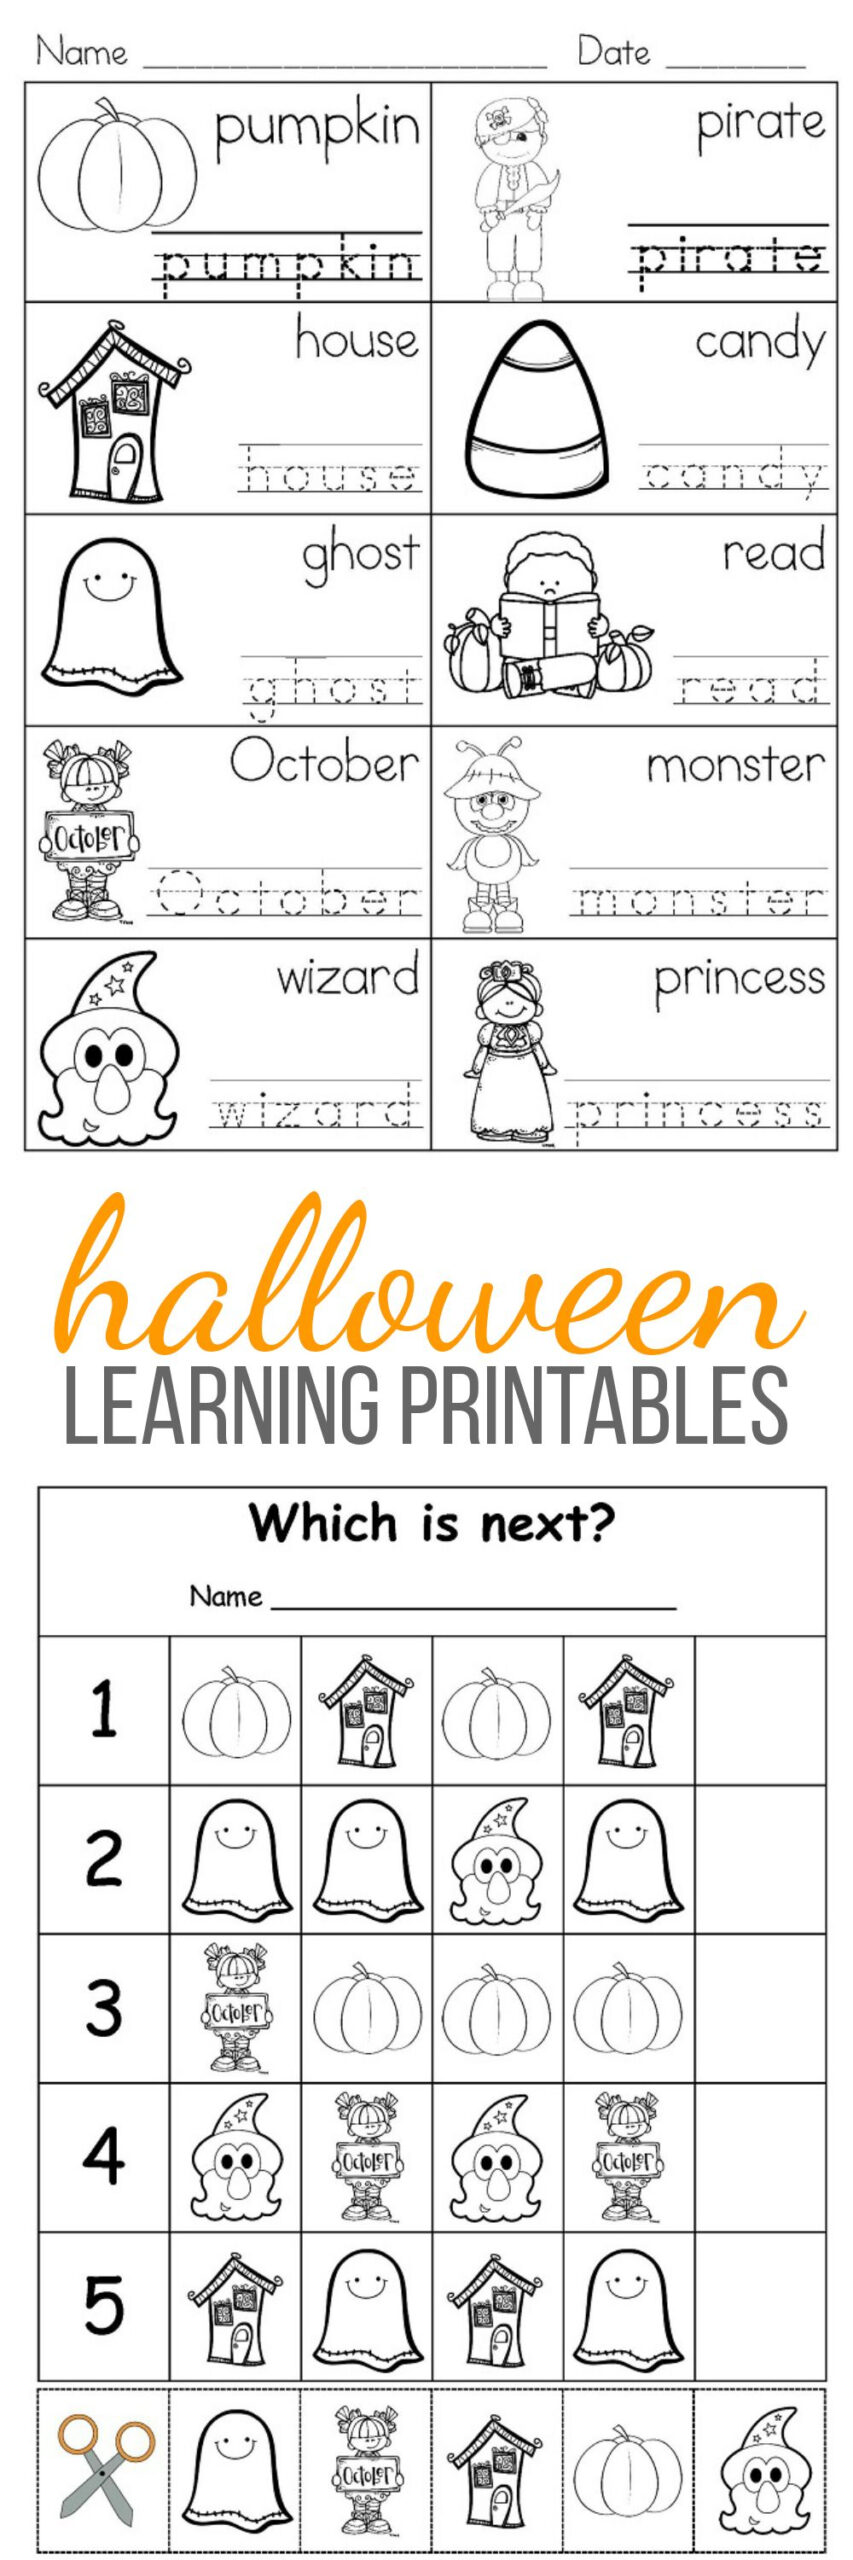 Free Printable Halloween Learning Activities For Kids